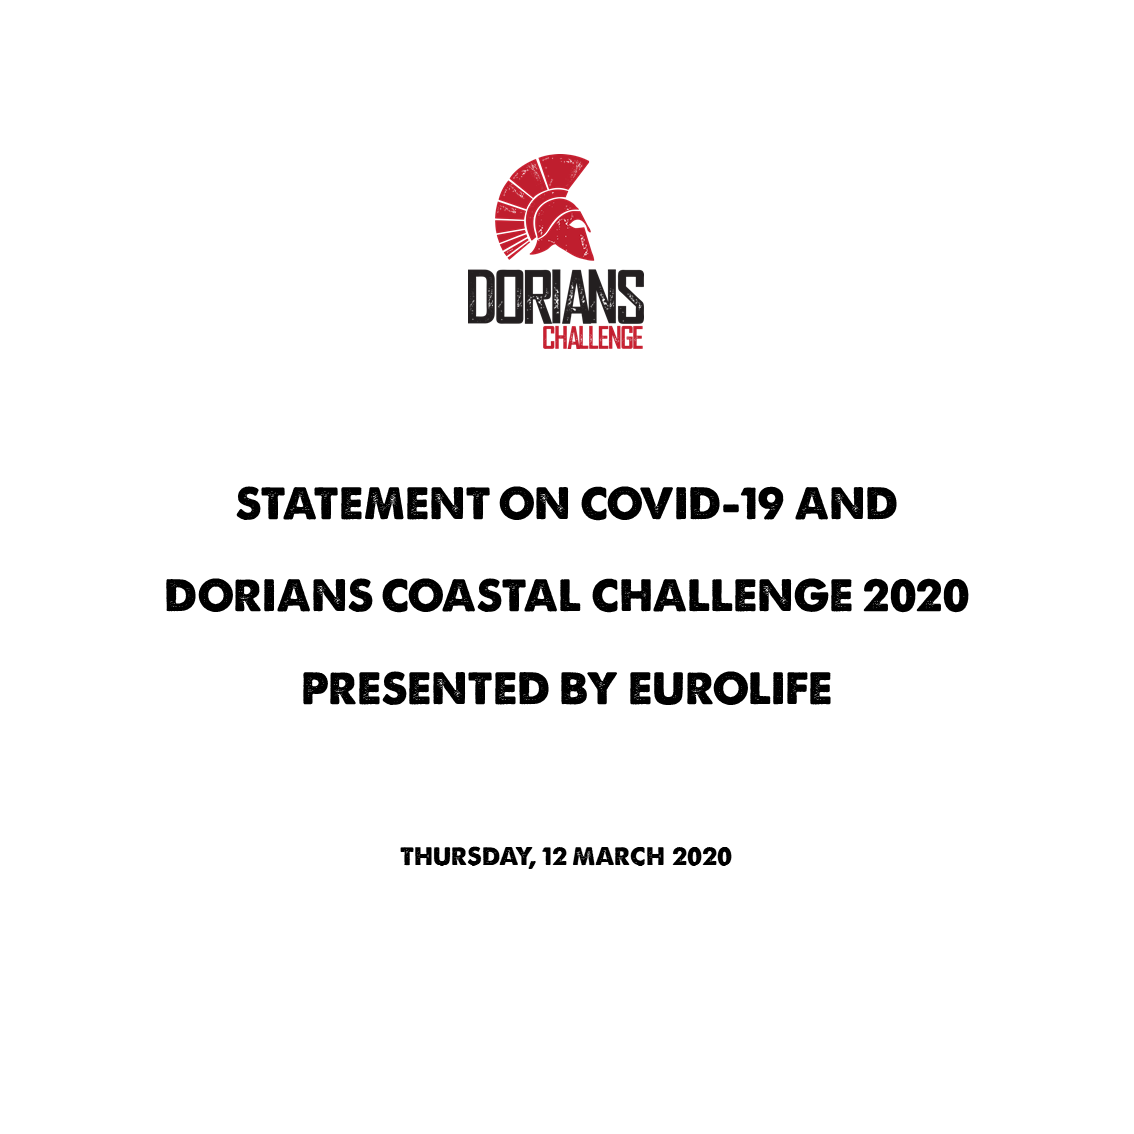 STATEMENT ON COVID-19 AND DORIANS COASTAL CHALLENGE 2020 PRESENTED BY EUROLIFE